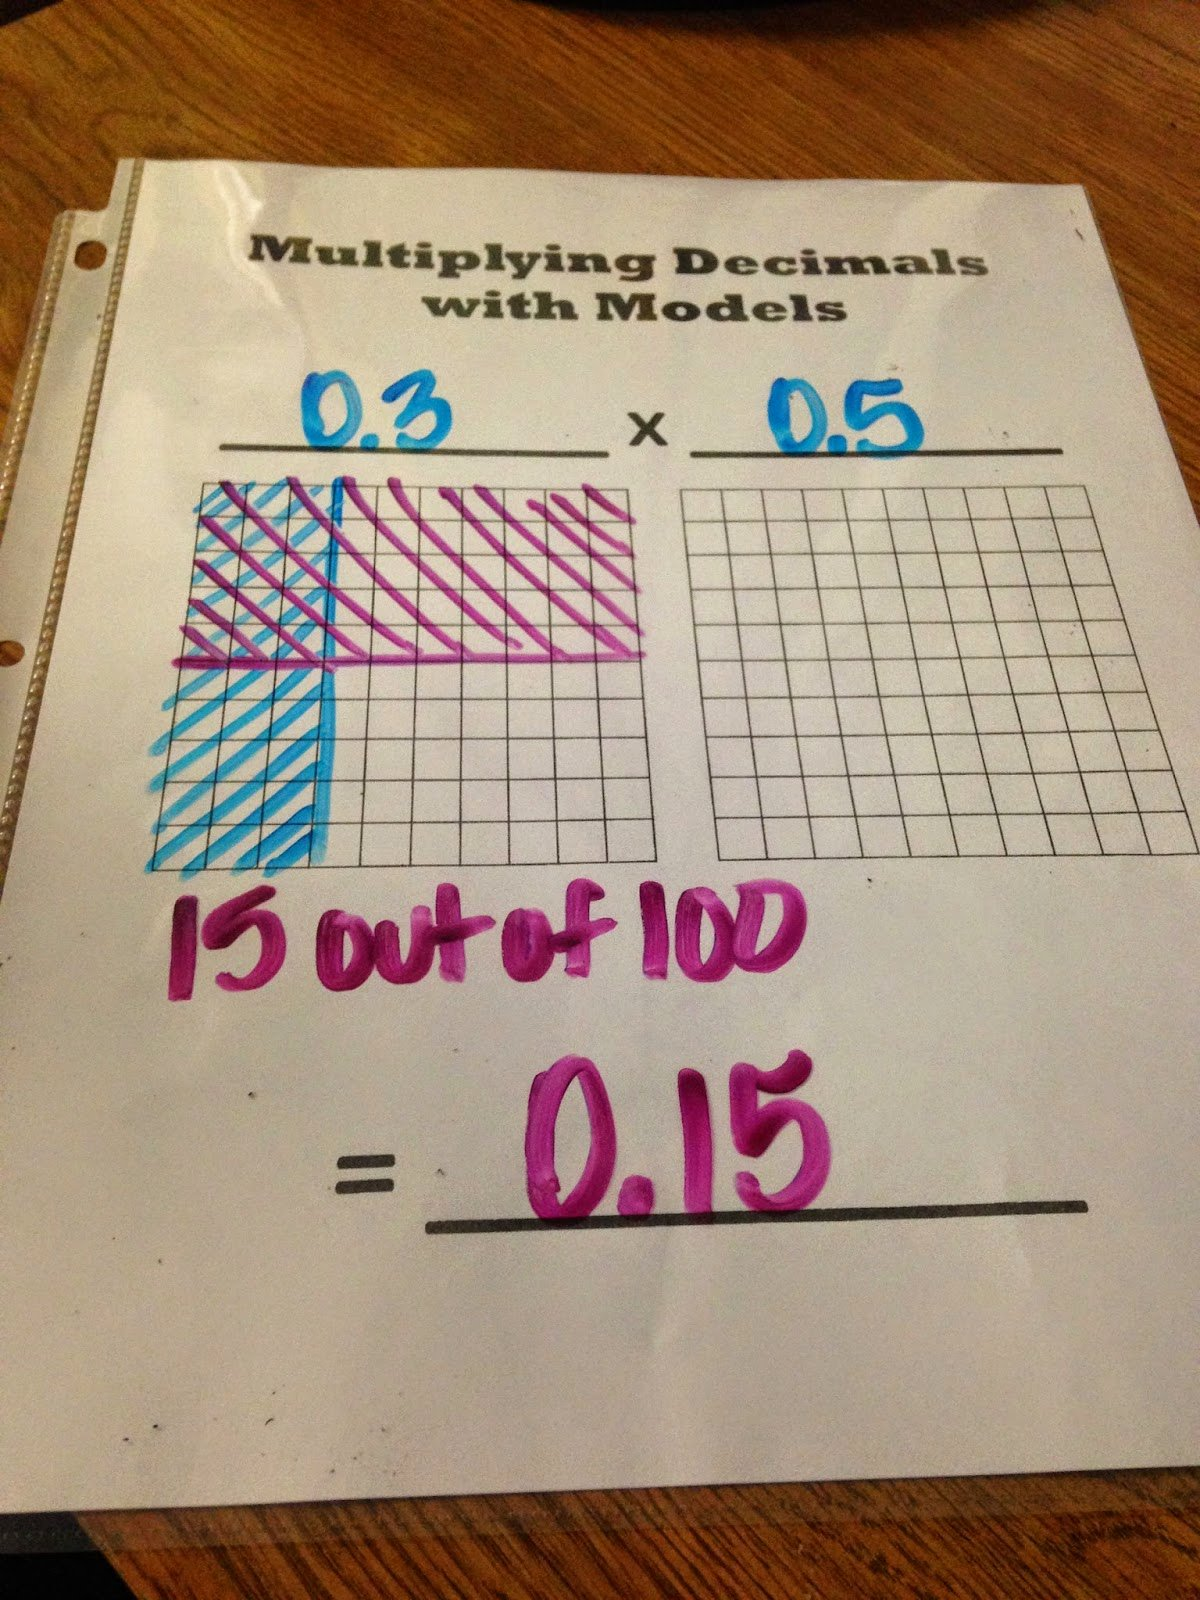 Multiplying Fractions Using Models Worksheet Luxury where Ms Green S Math Grows Multiplying Decimals with